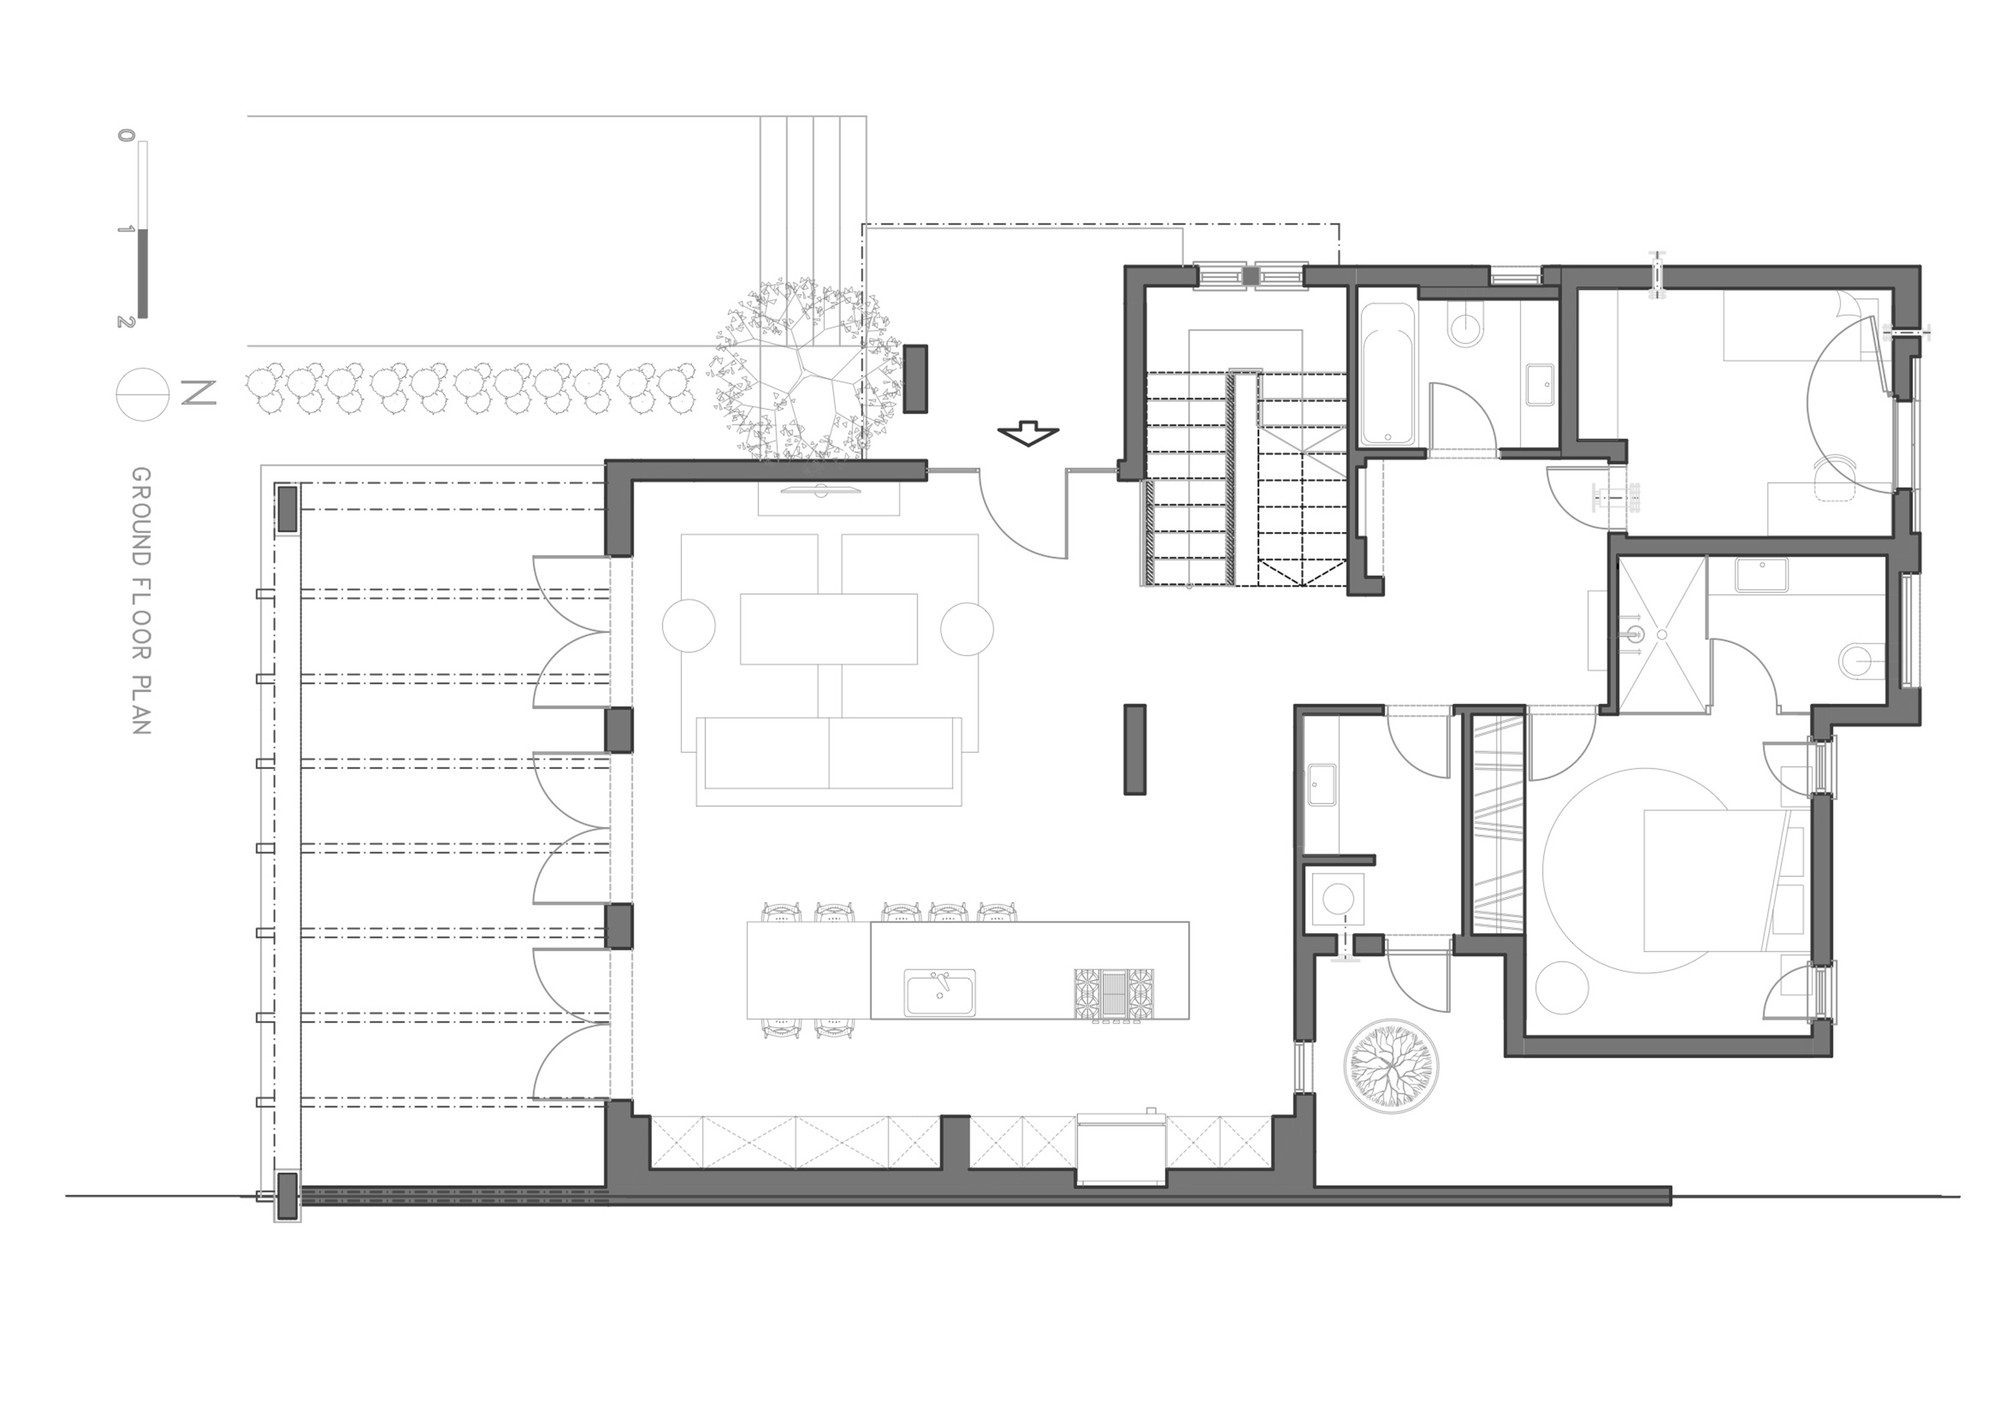 54bf25cbe58ece1abf0001dc Floor Plan on Small Office Floor Plans